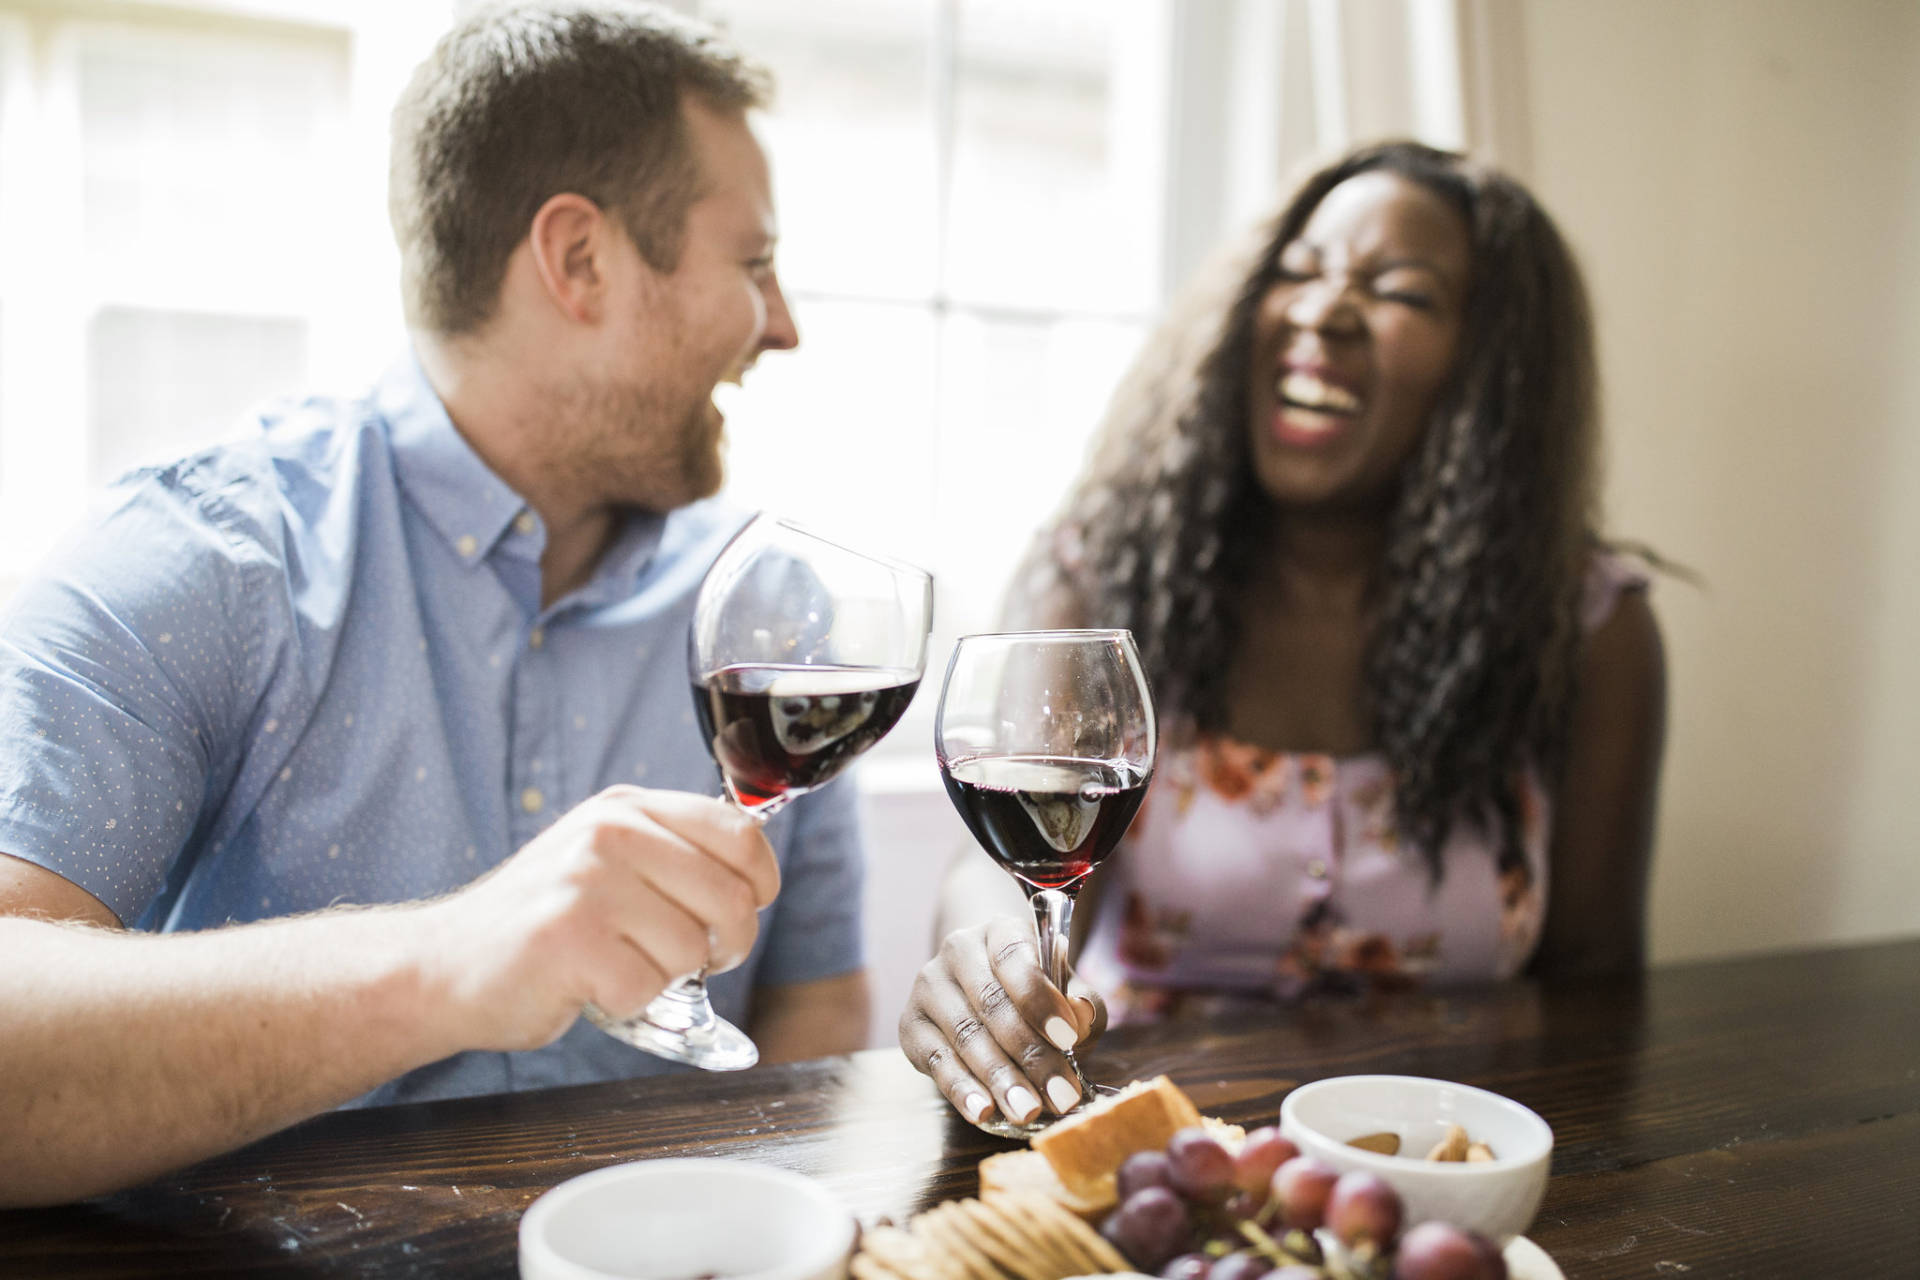 Elevate your date night in with Decoy Wine. Grab a glass, make a cheese board and make some memories with an amazing glass of red by Decoy Wine.